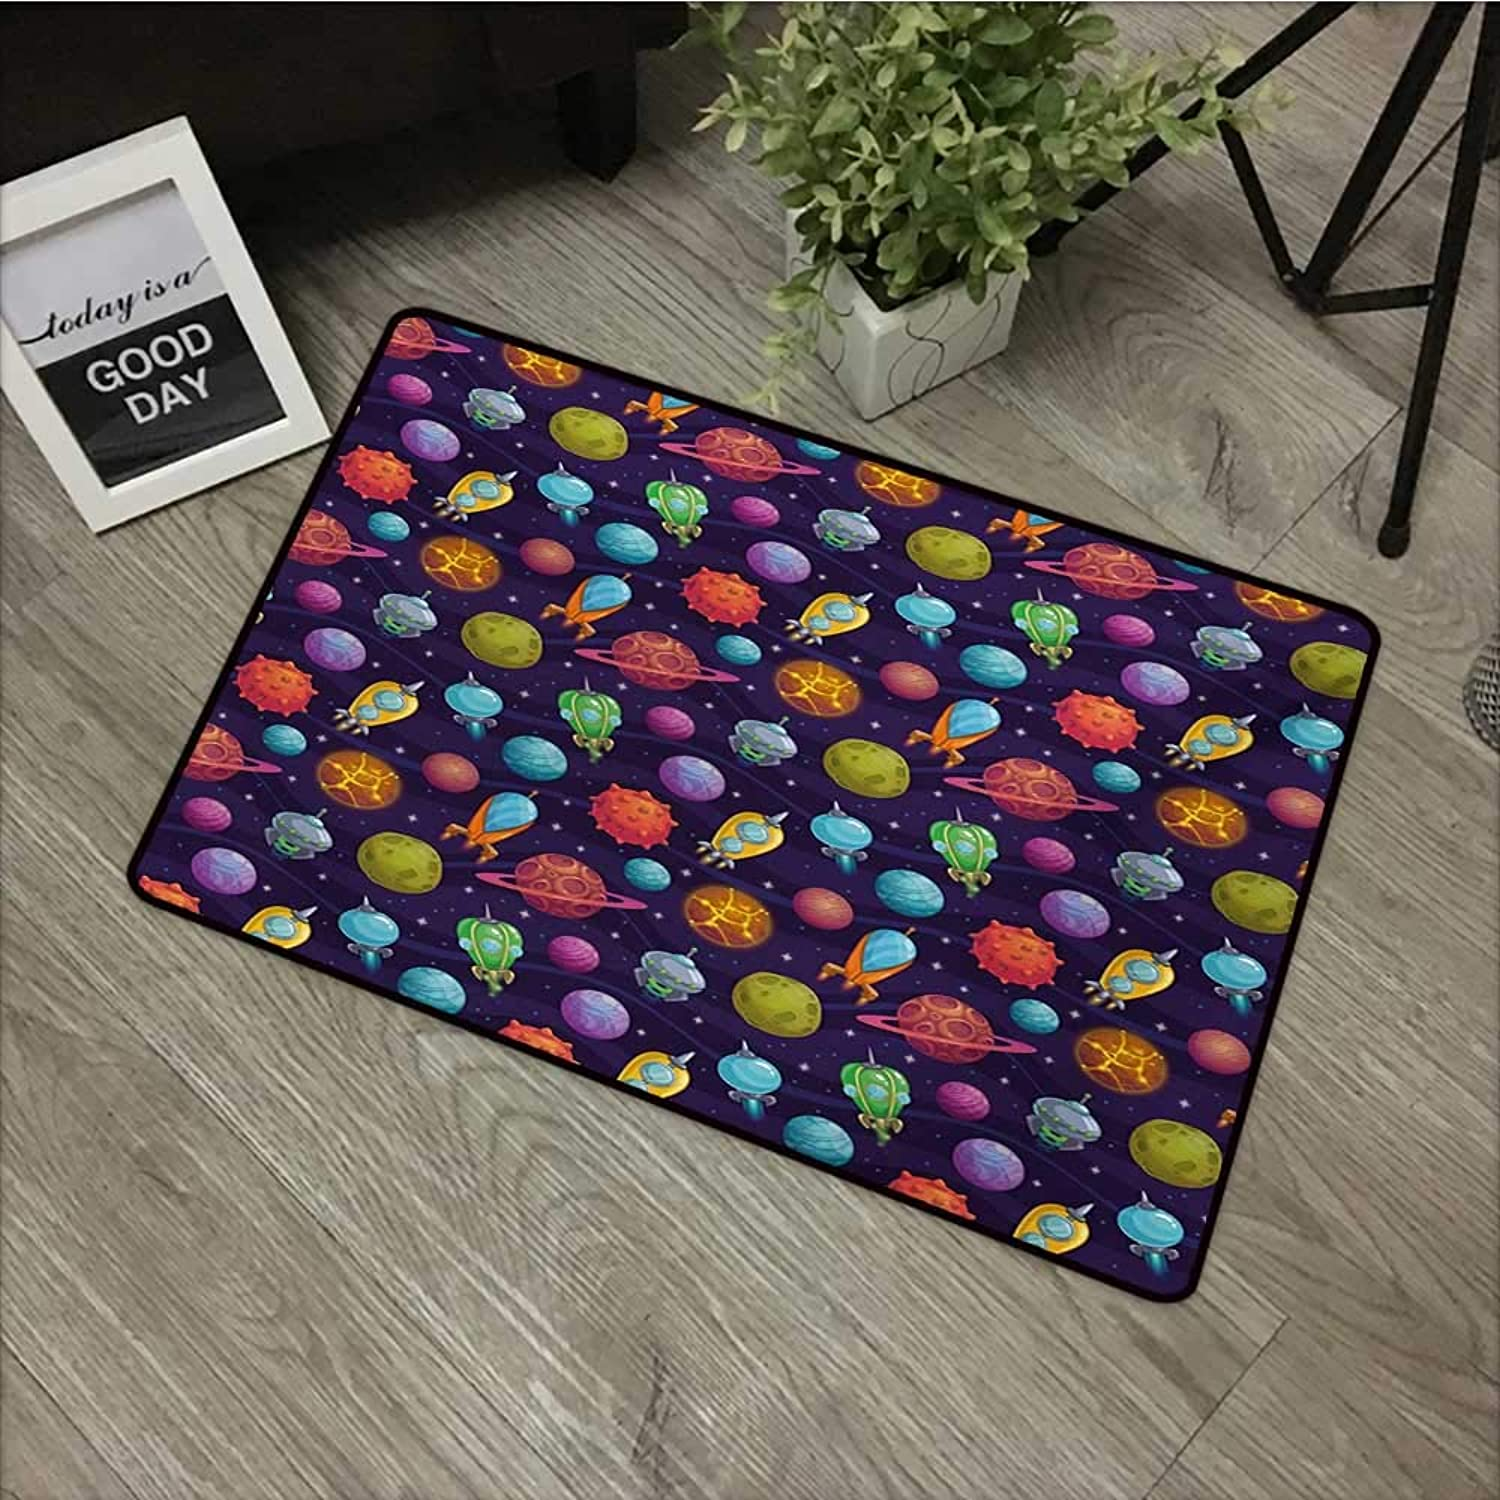 Bathroom Door mat W35 x L59 INCH Space,Cartoon Style Alien Planets with Different Environments and Spacecrafts and Stars,Multicolor Easy to Clean, no Deformation, no Fading Non-Slip Door Mat Carpet